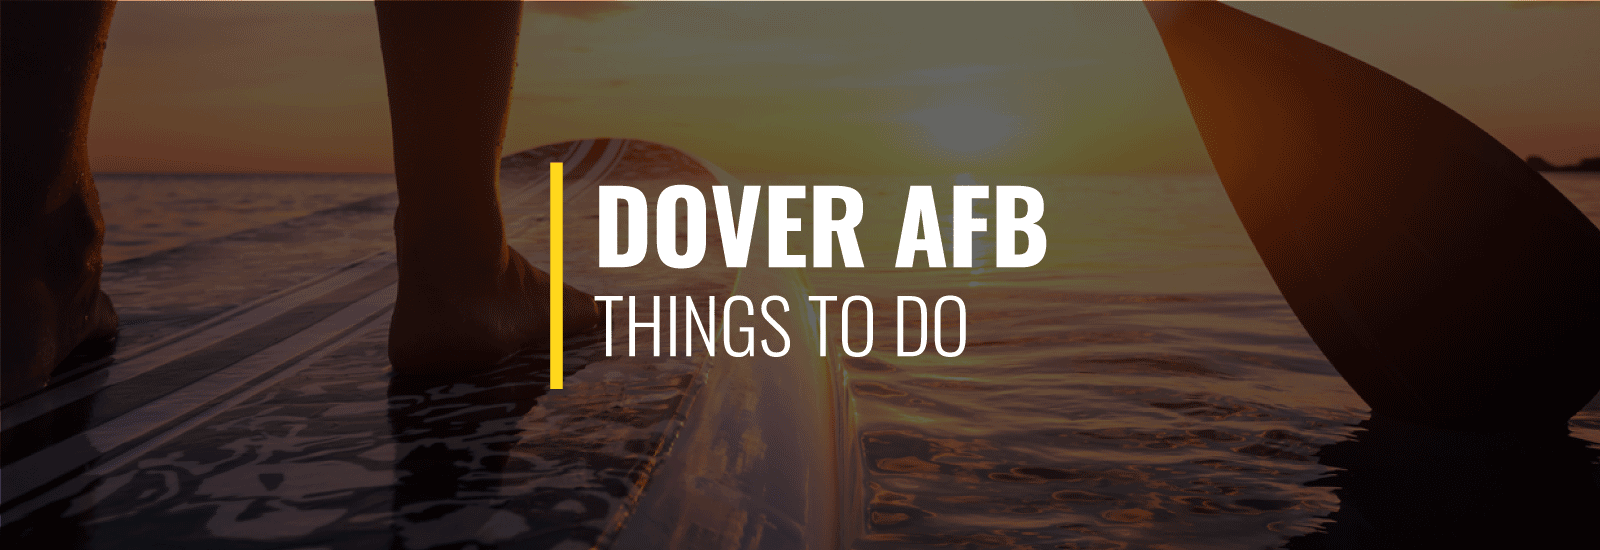 Dover AFB Things to Do